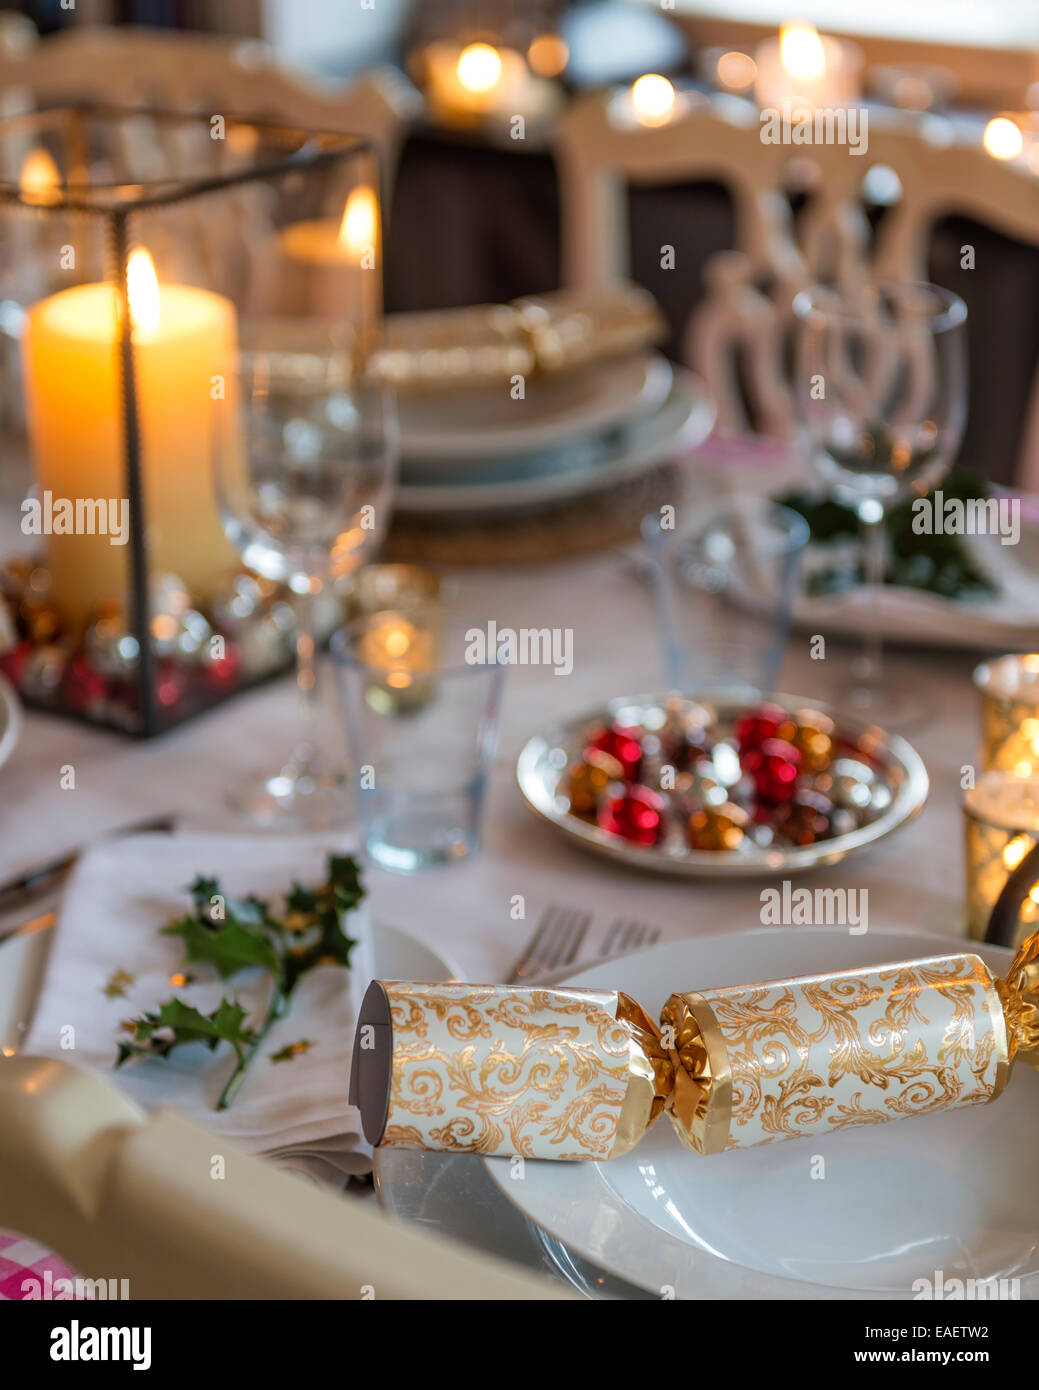 Detail of a christmas cracker at a laid table place - Stock Image